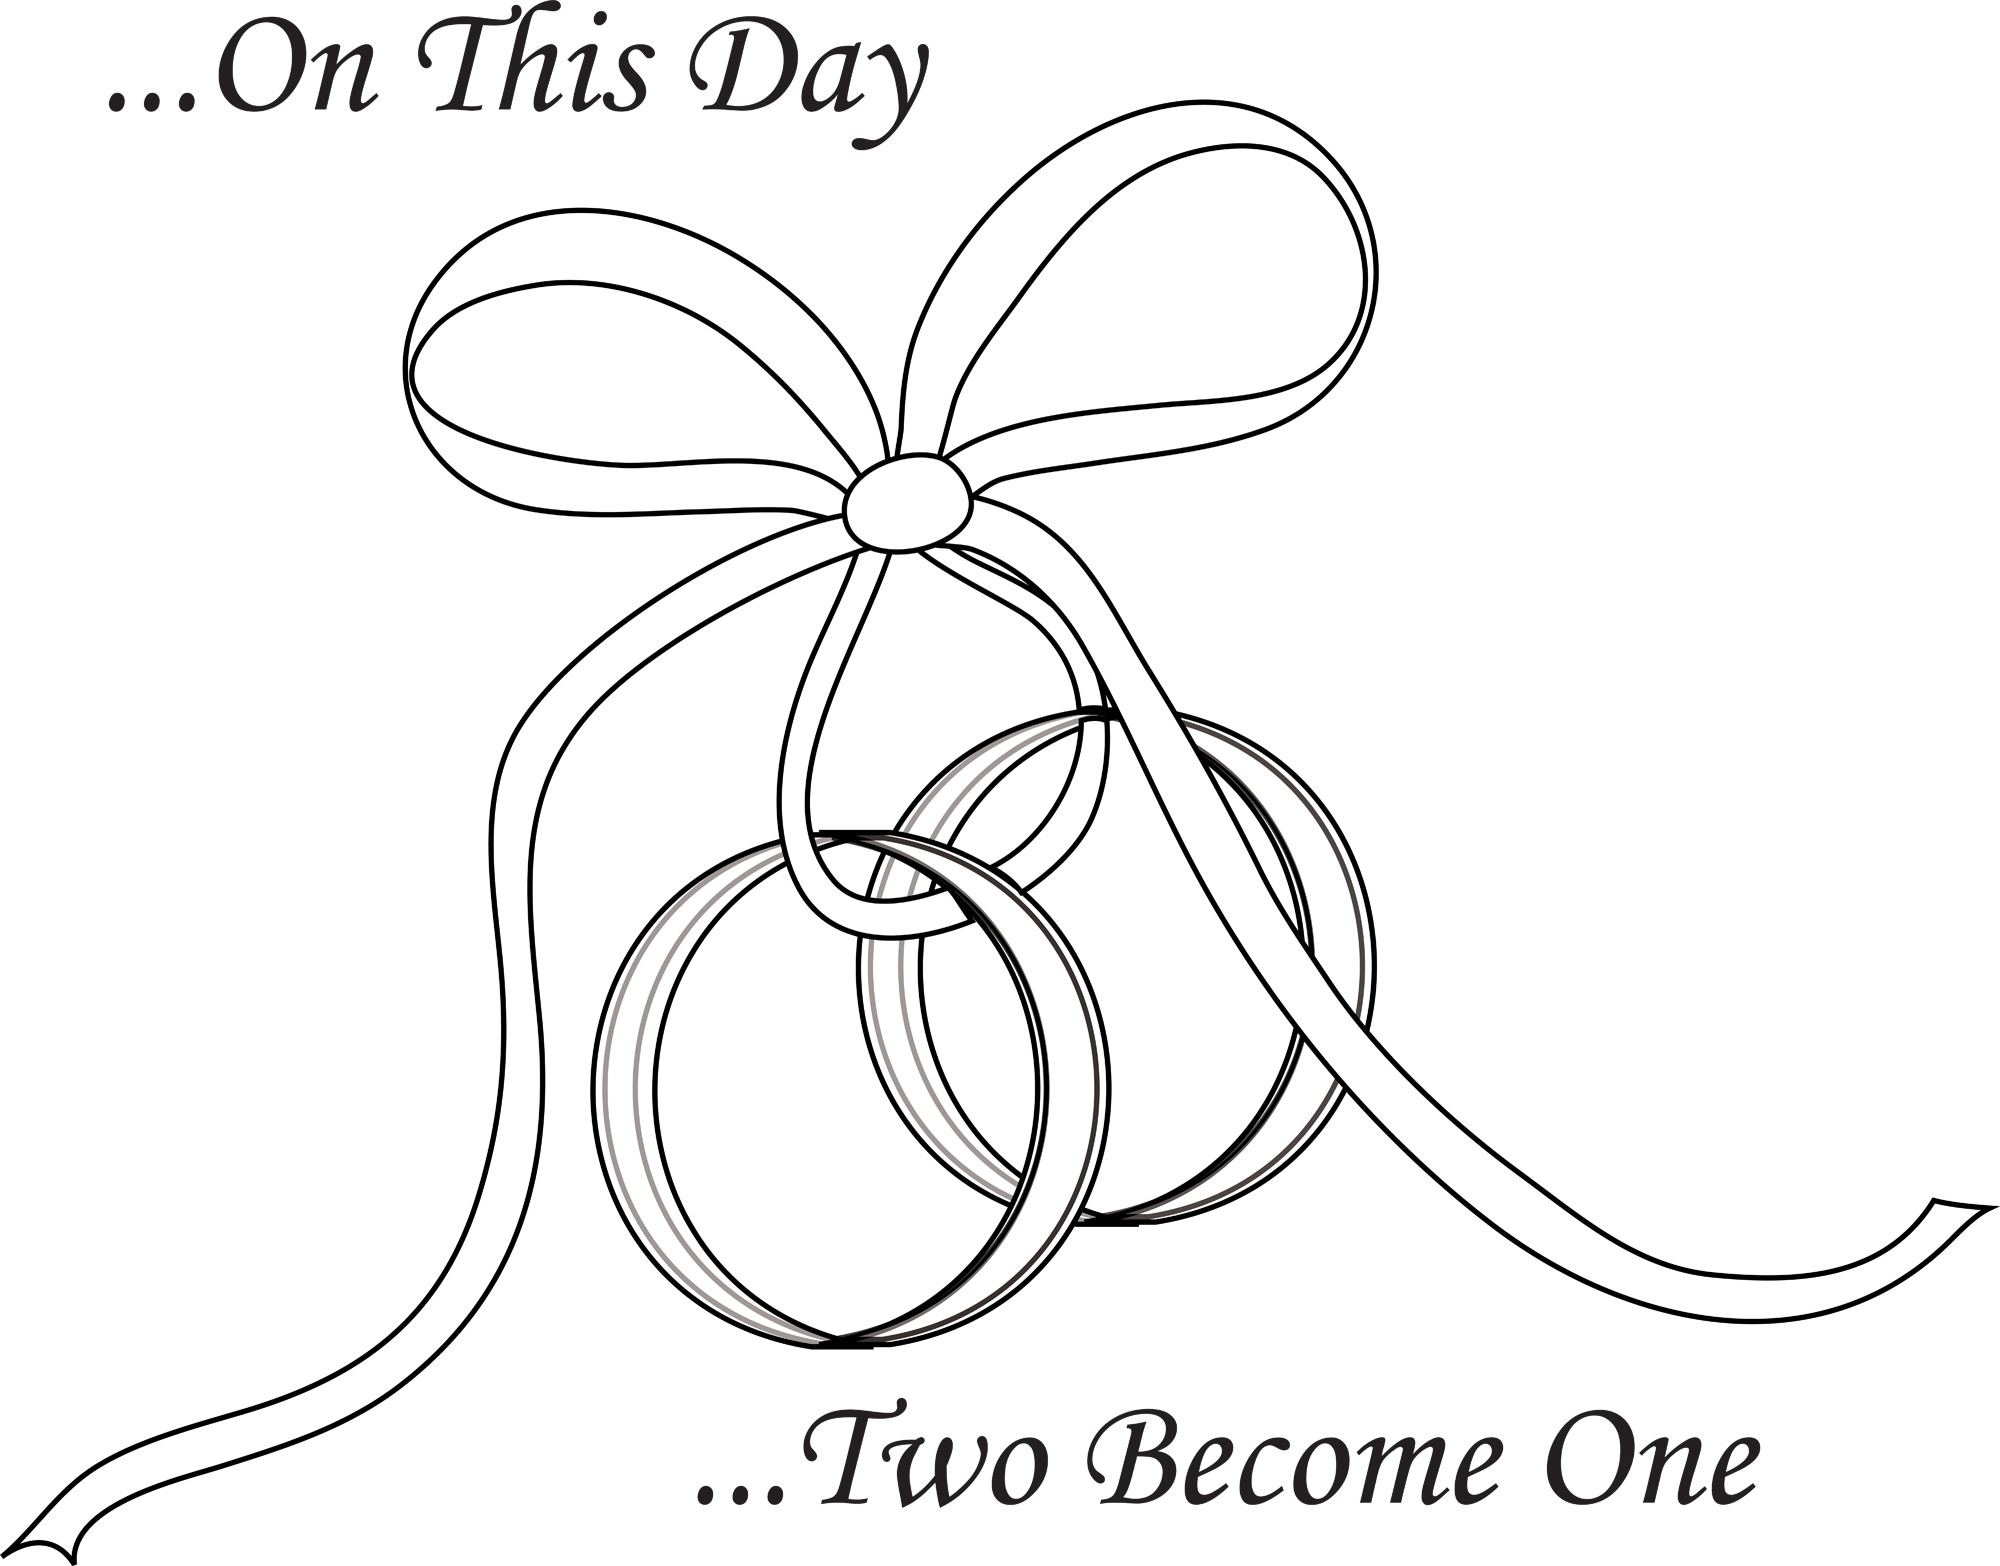 Interlocking Wedding Rings Drawing At Getdrawings